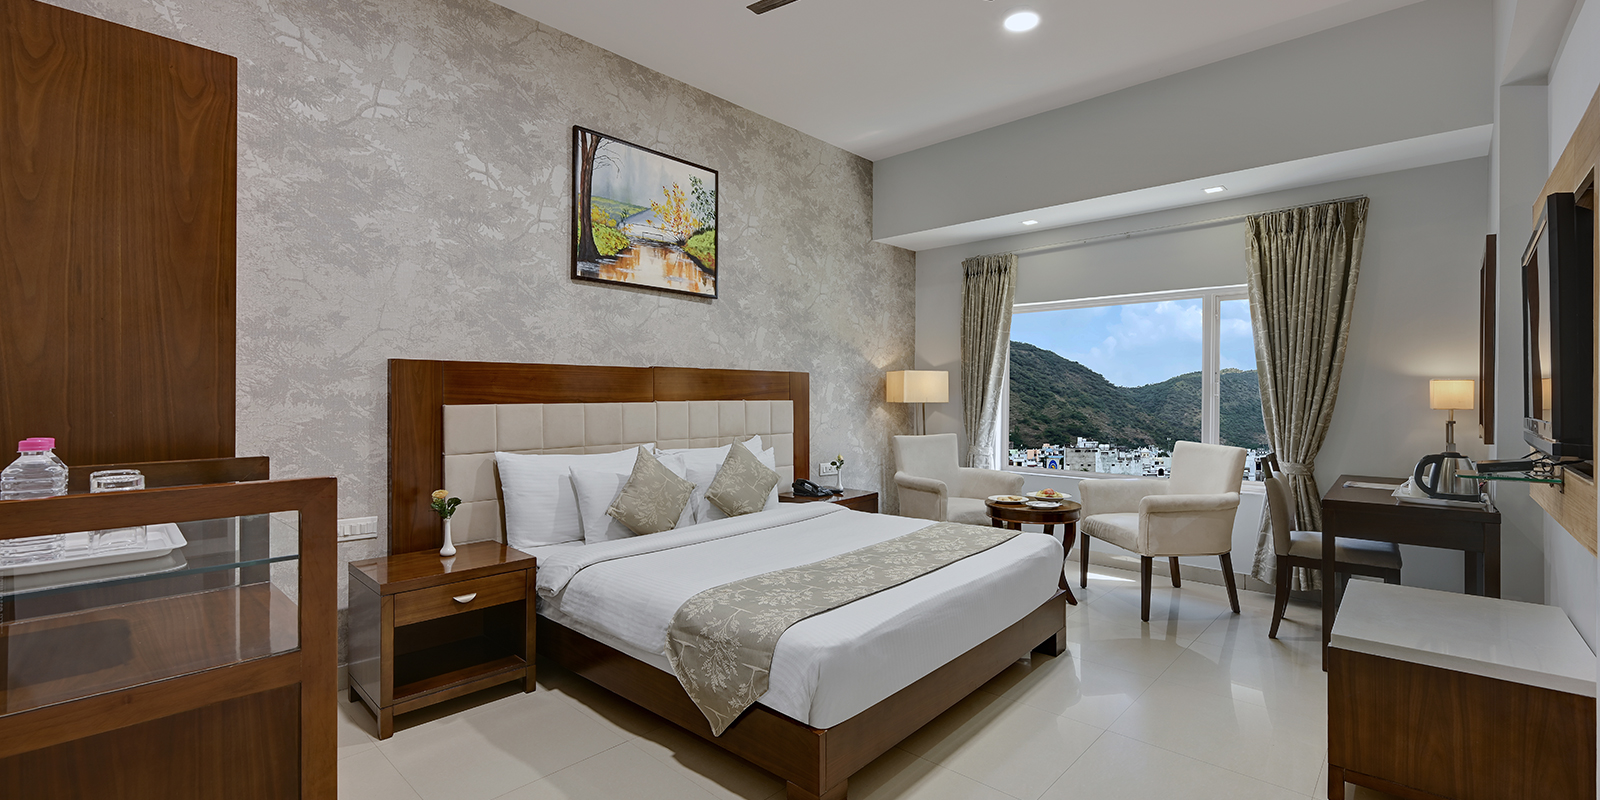 Best Hotel in Udaipur